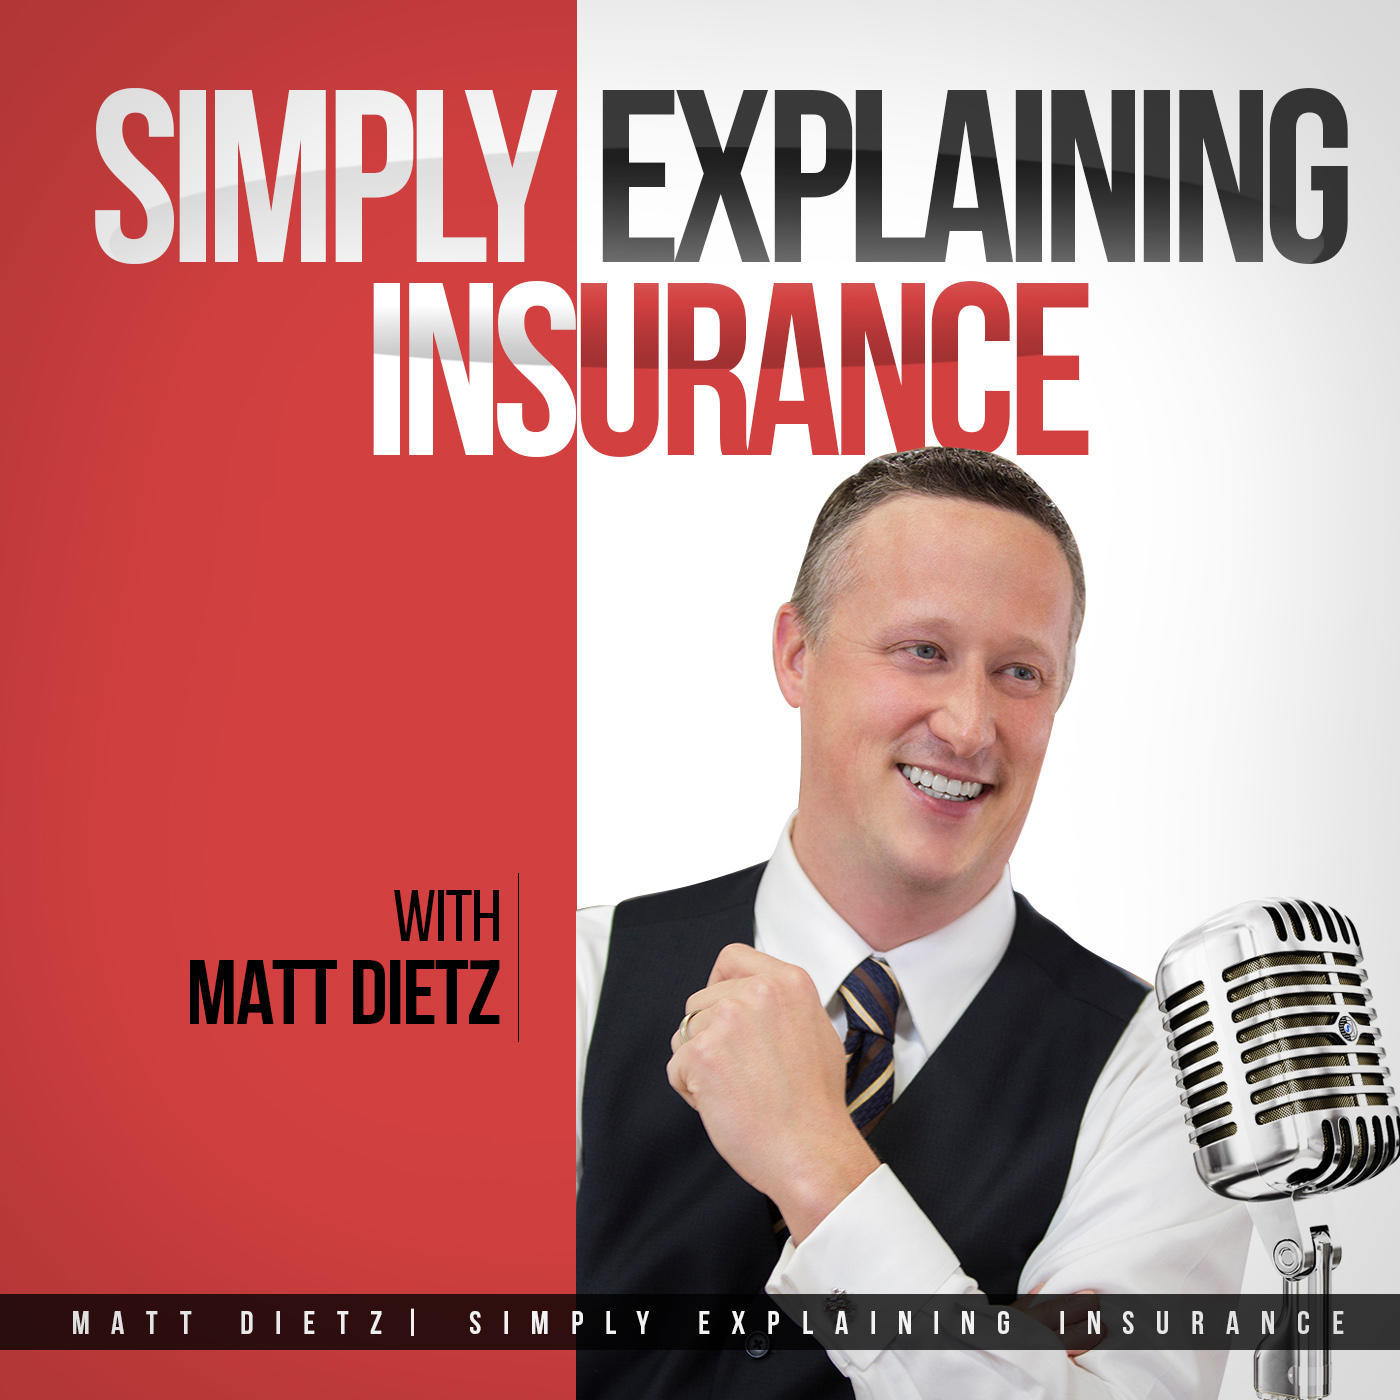 Farmers Insurance - Matt Dietz image 2